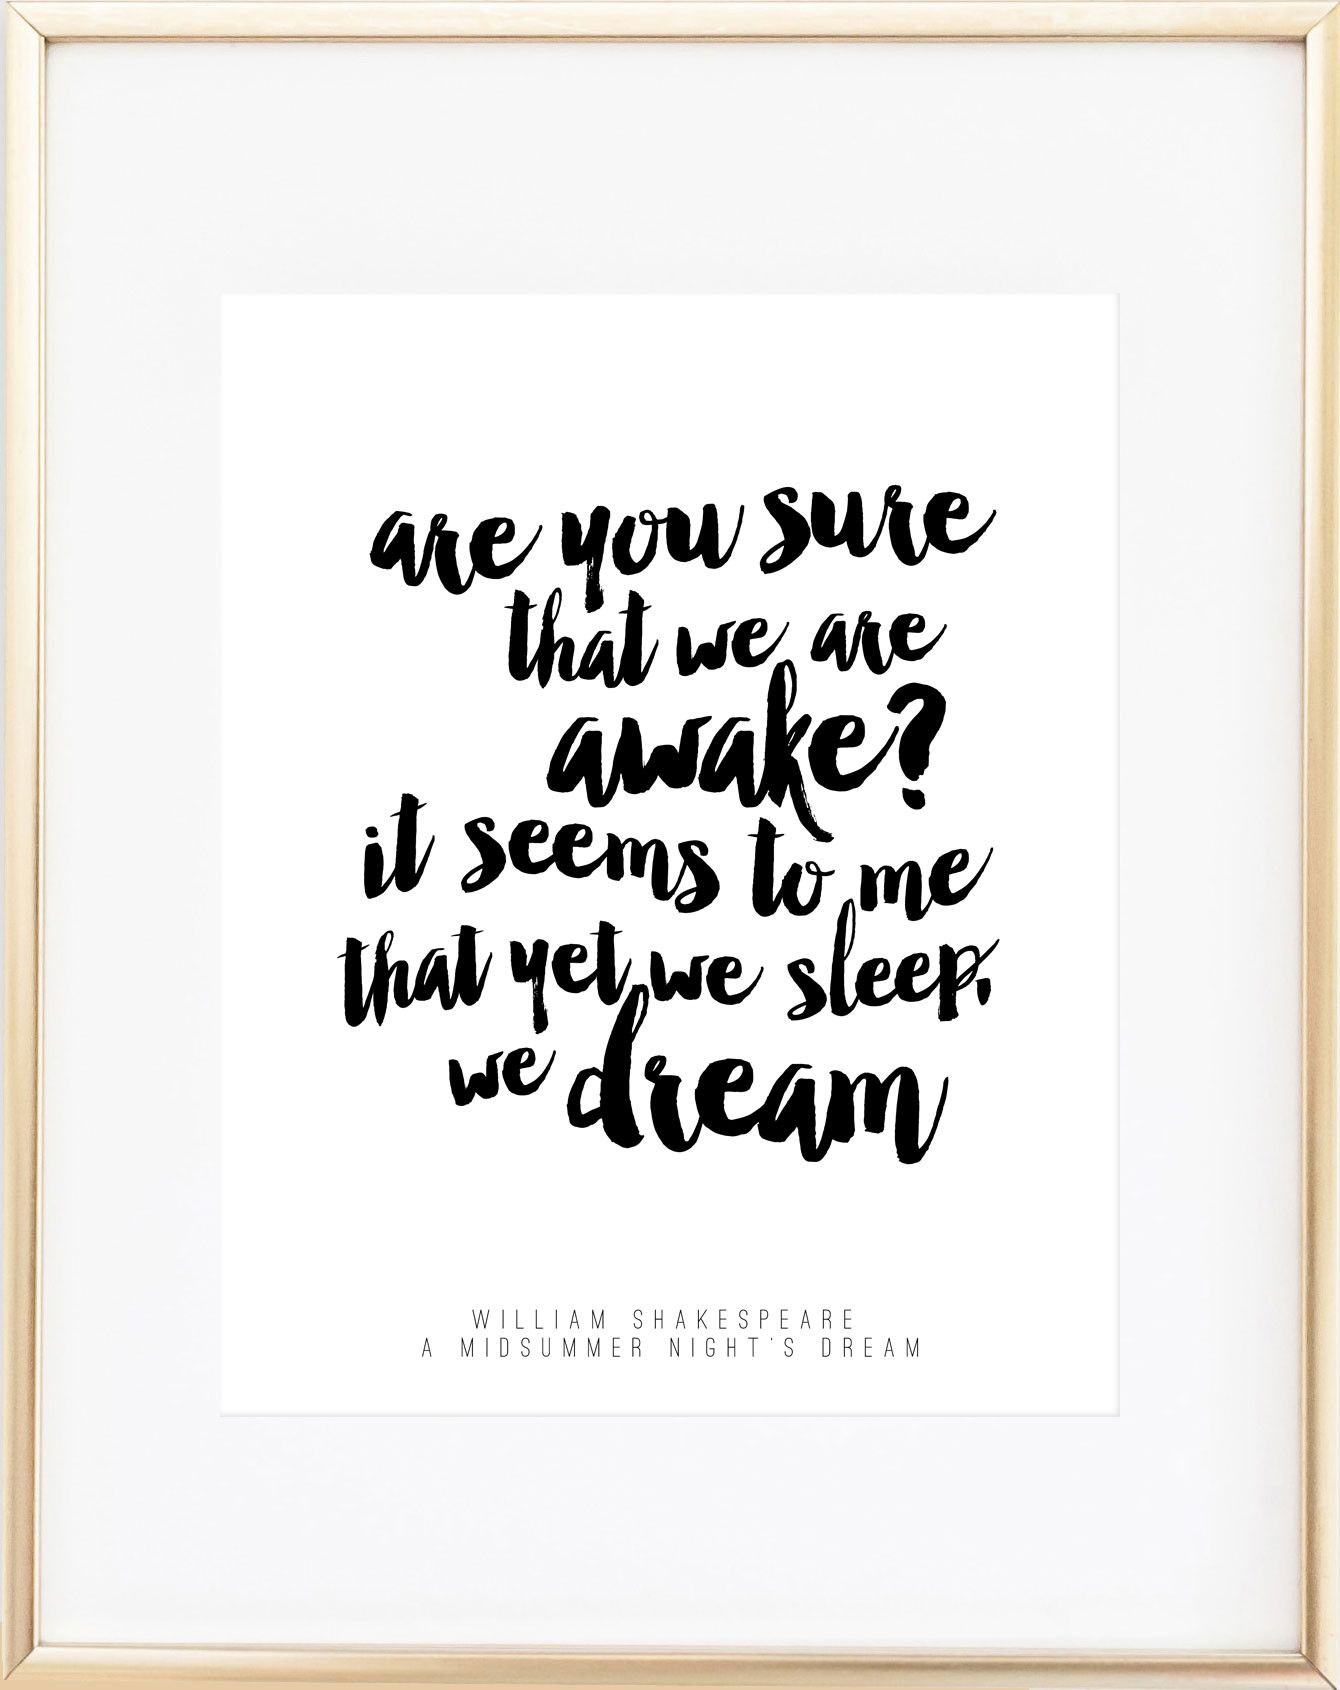 Midsummer Night's Dream Quotes Alluring Shakespeare Quote  A Midsummer Night's Dream  Pinterest